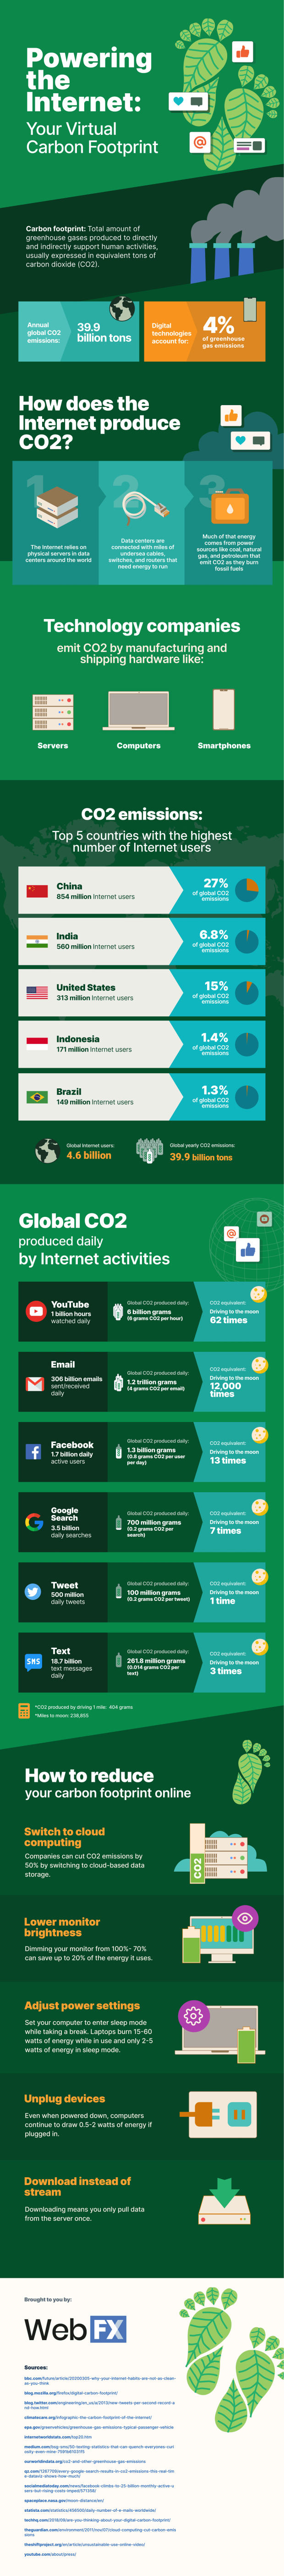 Infographic from WebFX showing your virtual carbon footprint